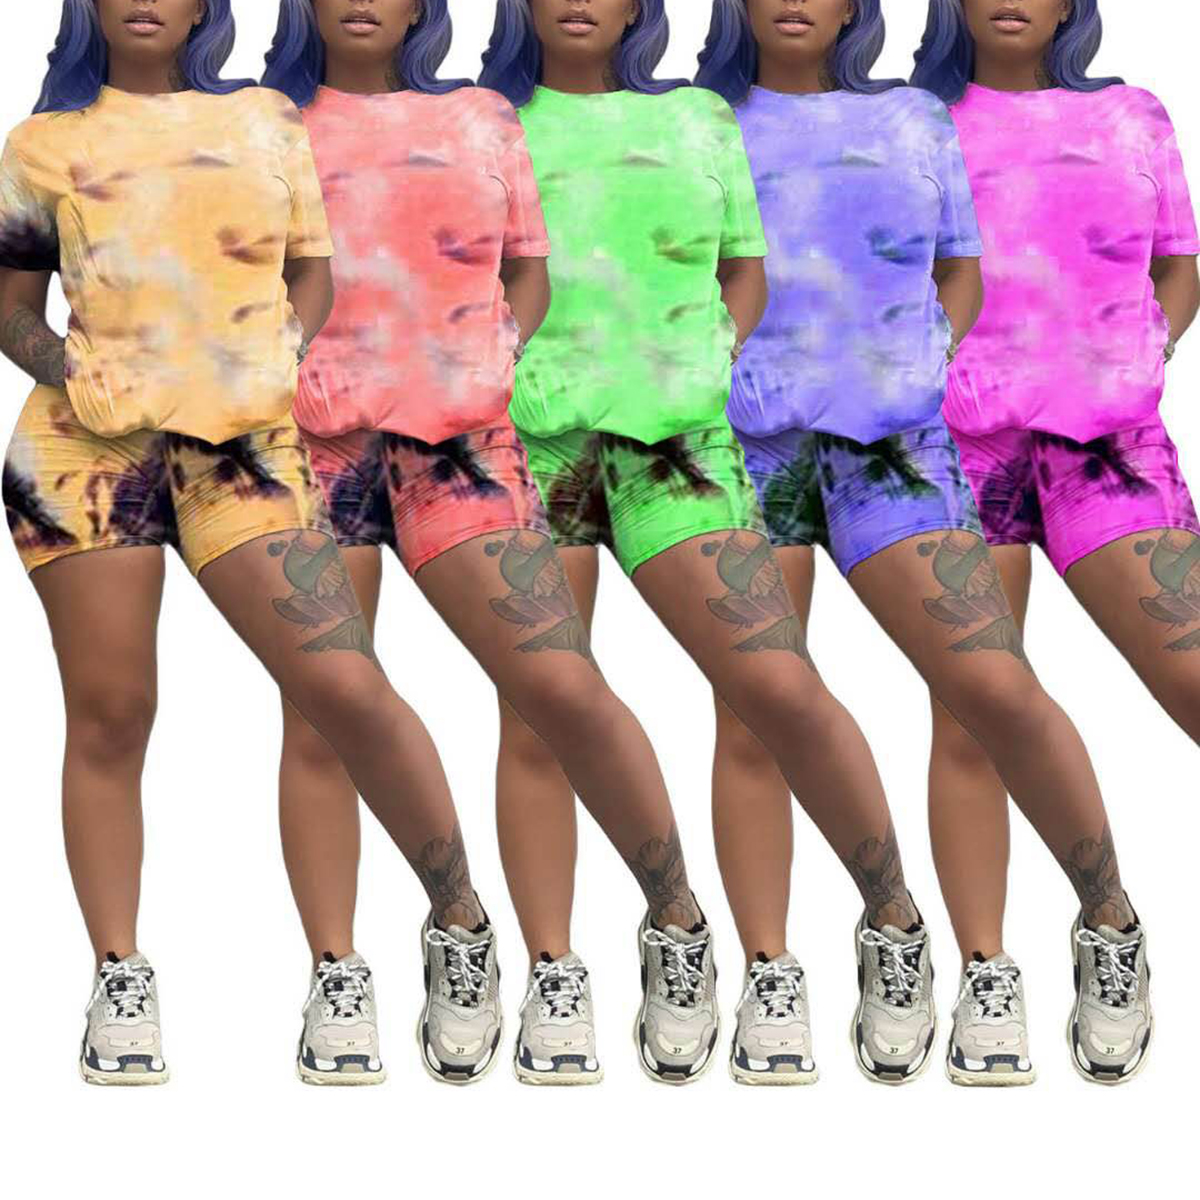 Two Piece Set Outfits Tie Dye Crop Tops And Biker Shorts Set Summer Matching Sets Fitness Sportwear Summer Clothes For Women